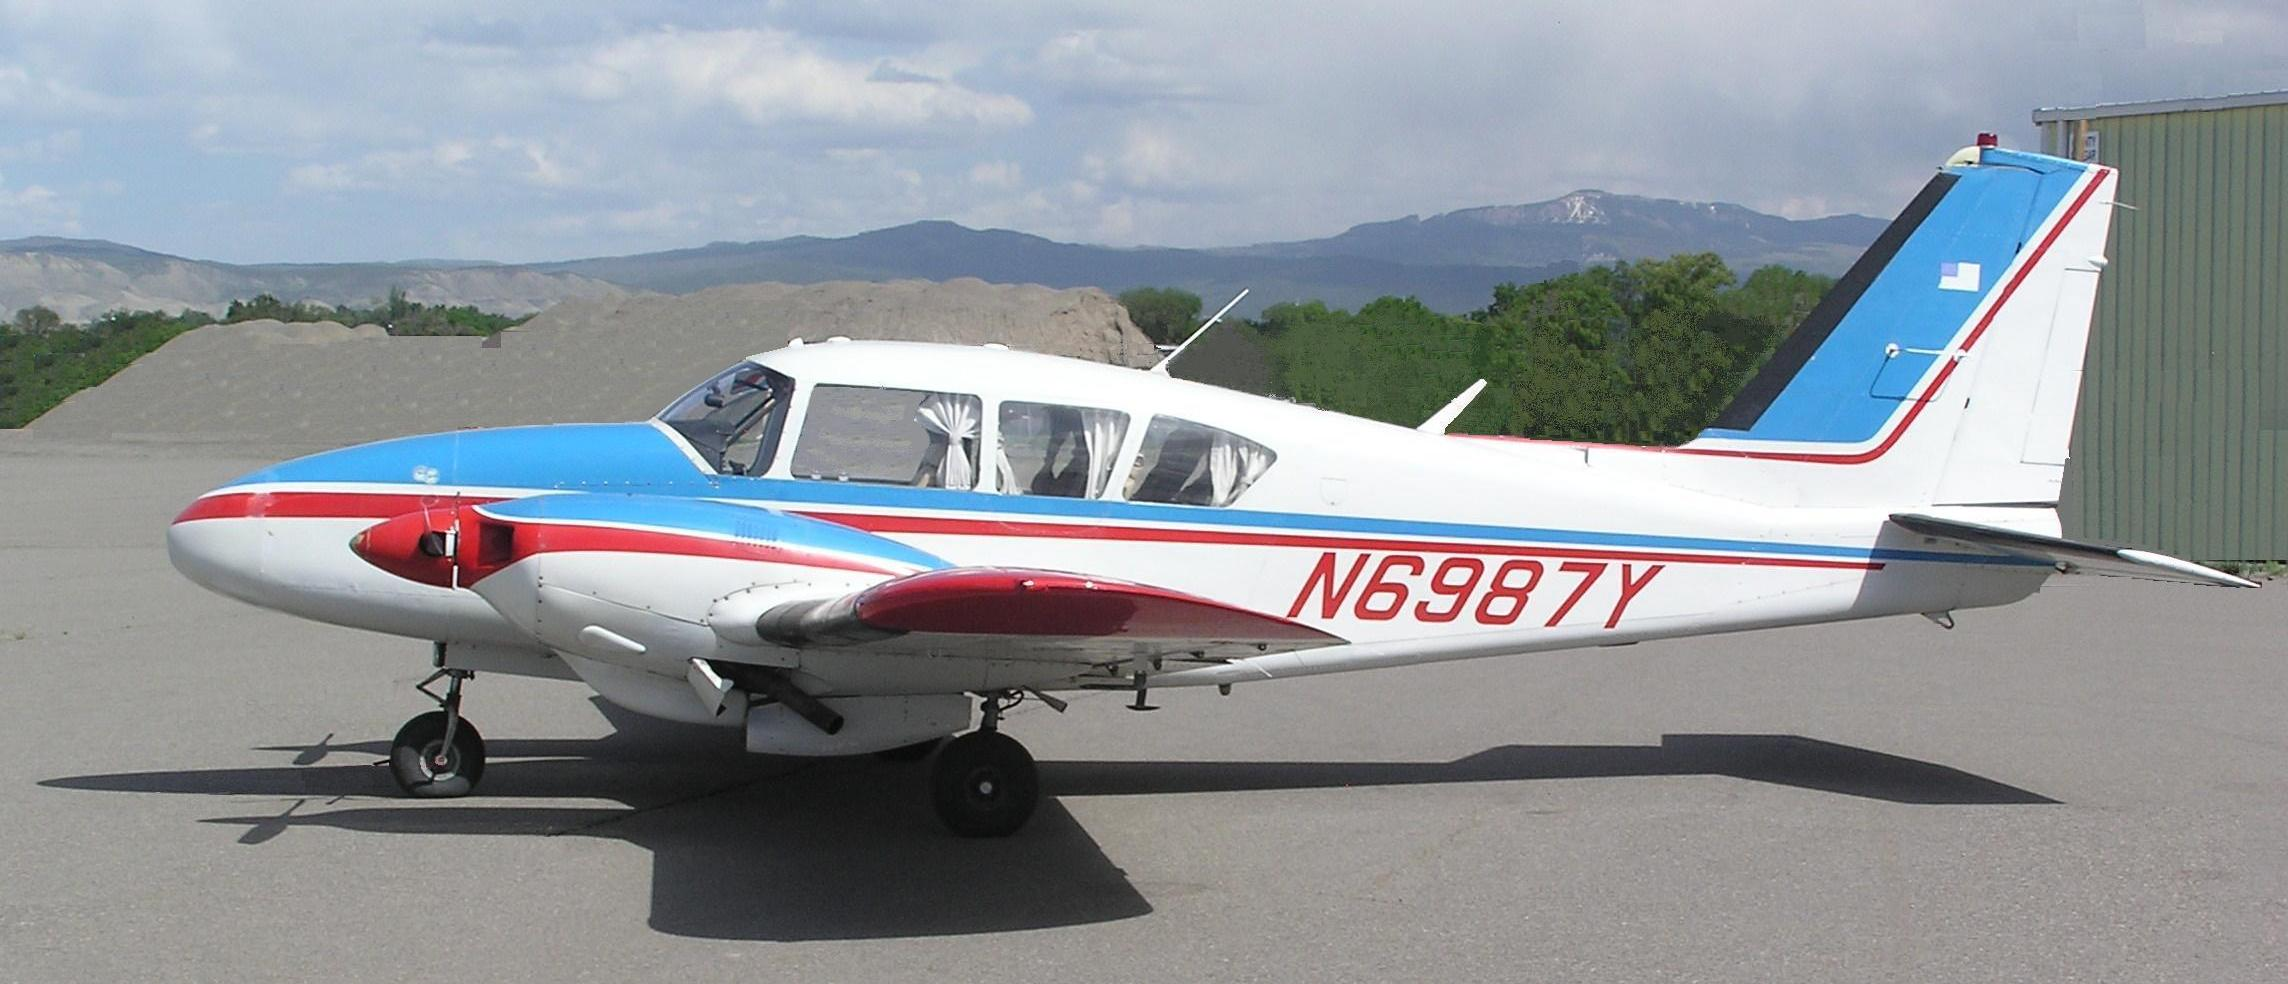 Larson Aircraft Sales 1970 Piper Turbo Aztec De Iced